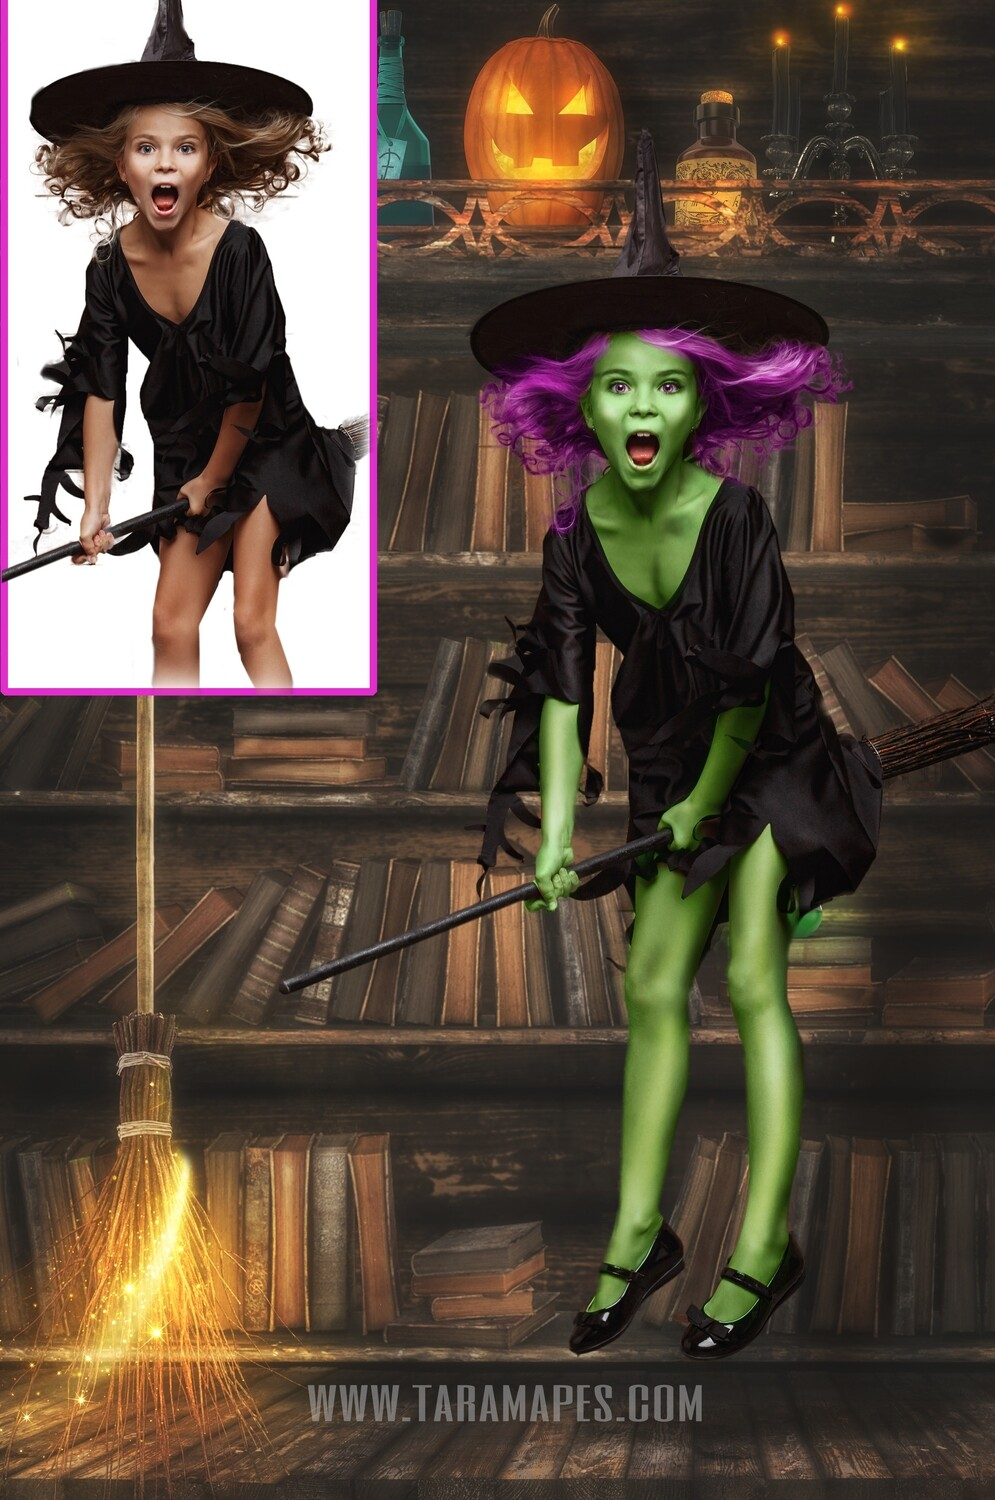 The Witch Bookcase Painterly Fine Art Photoshop Tutorial by Tara Mapes